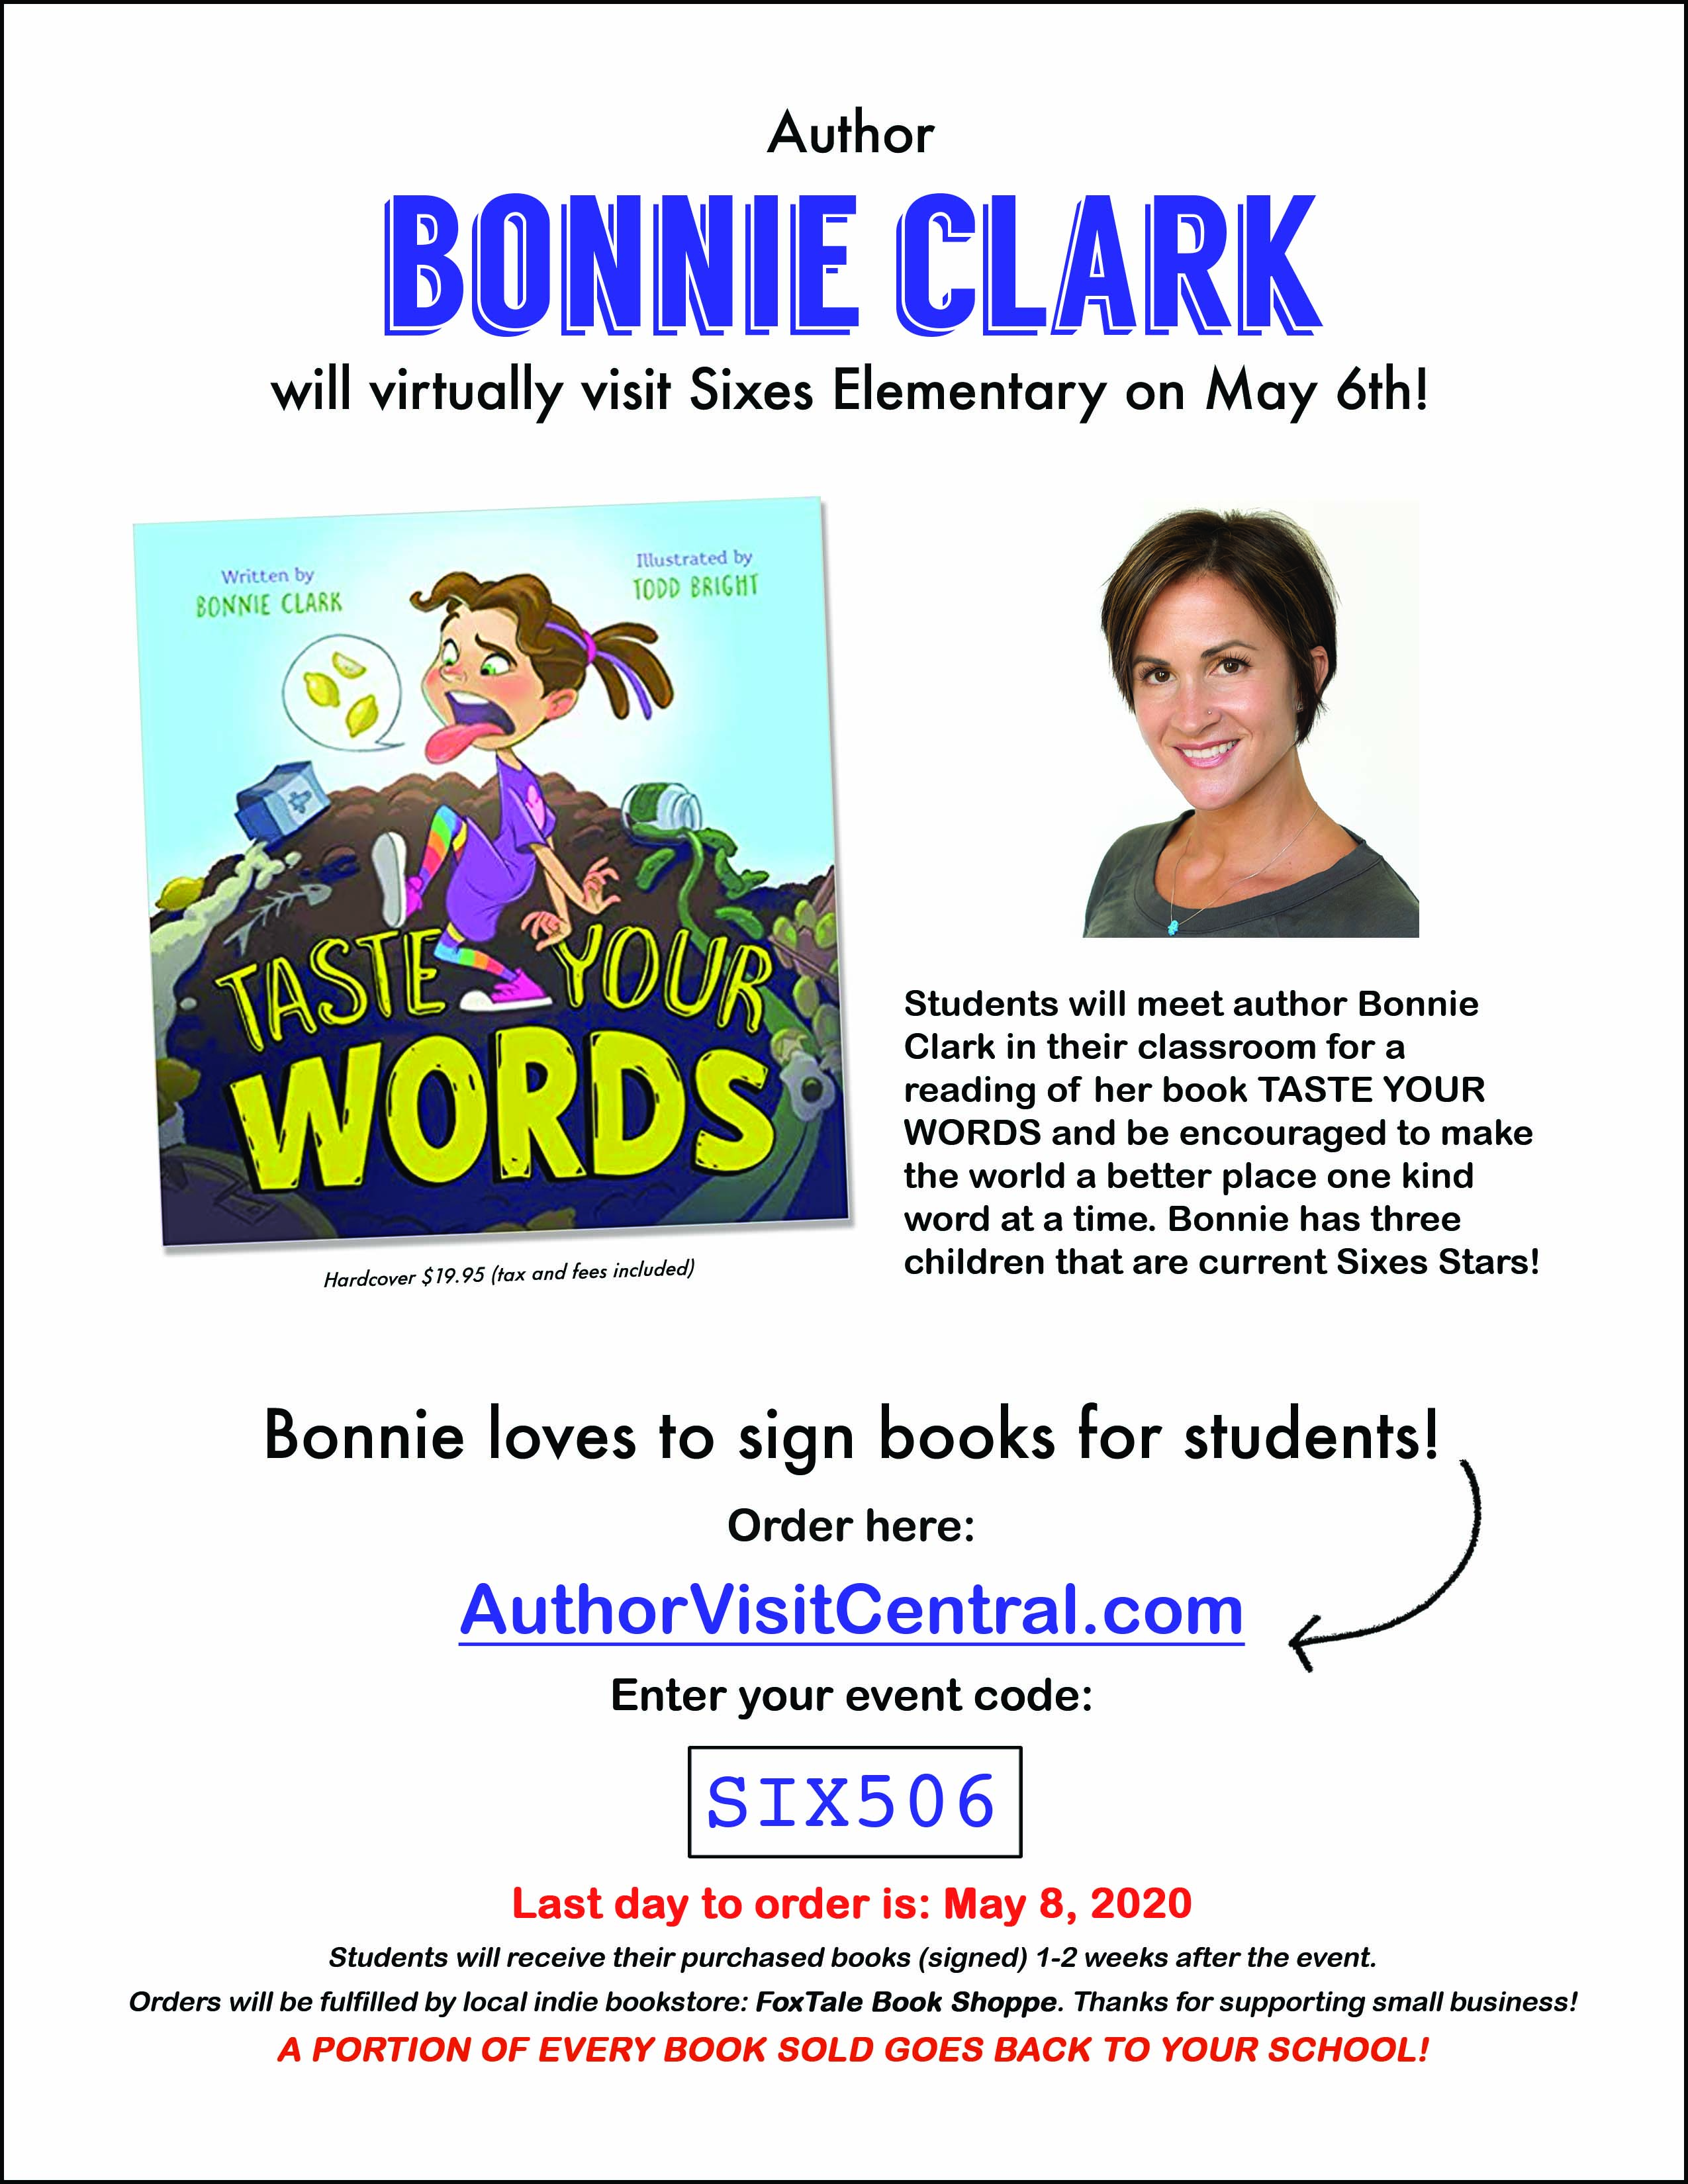 Bonnie Clark Author Visit Flier